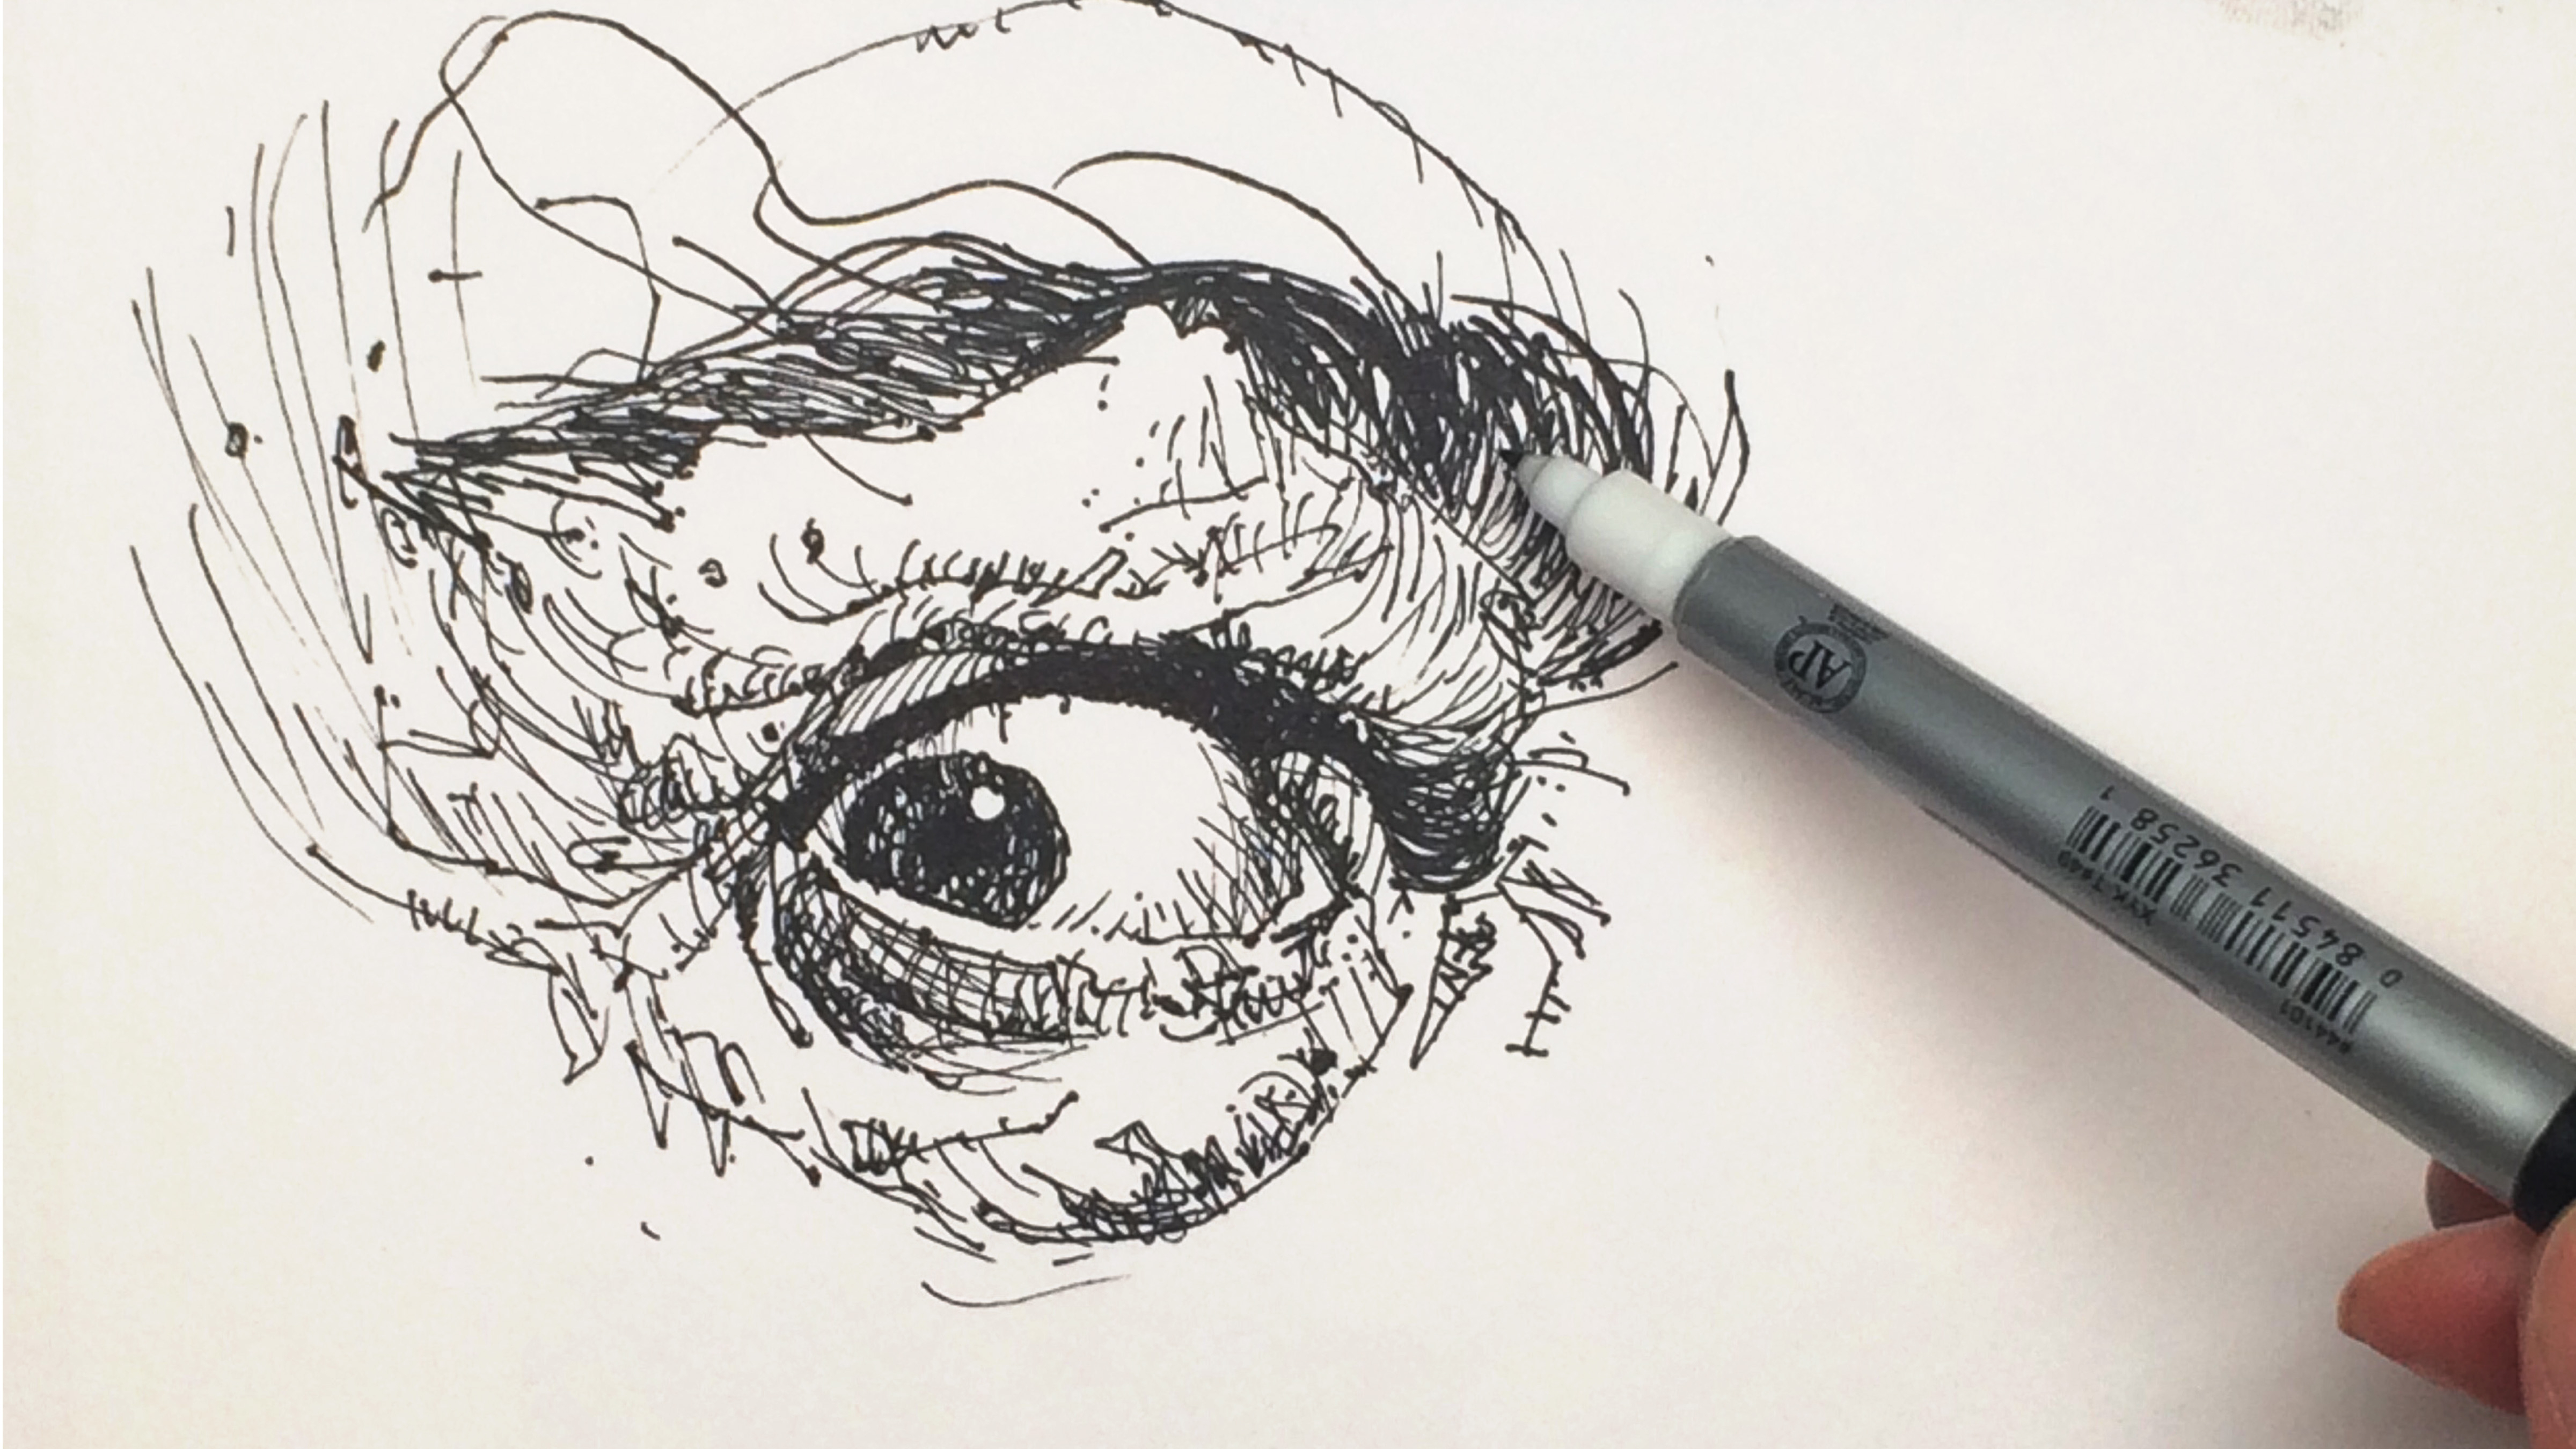 4800x2700 Pen And Ink Drawing Tutorial Pen Ink Drawing Tutorials How